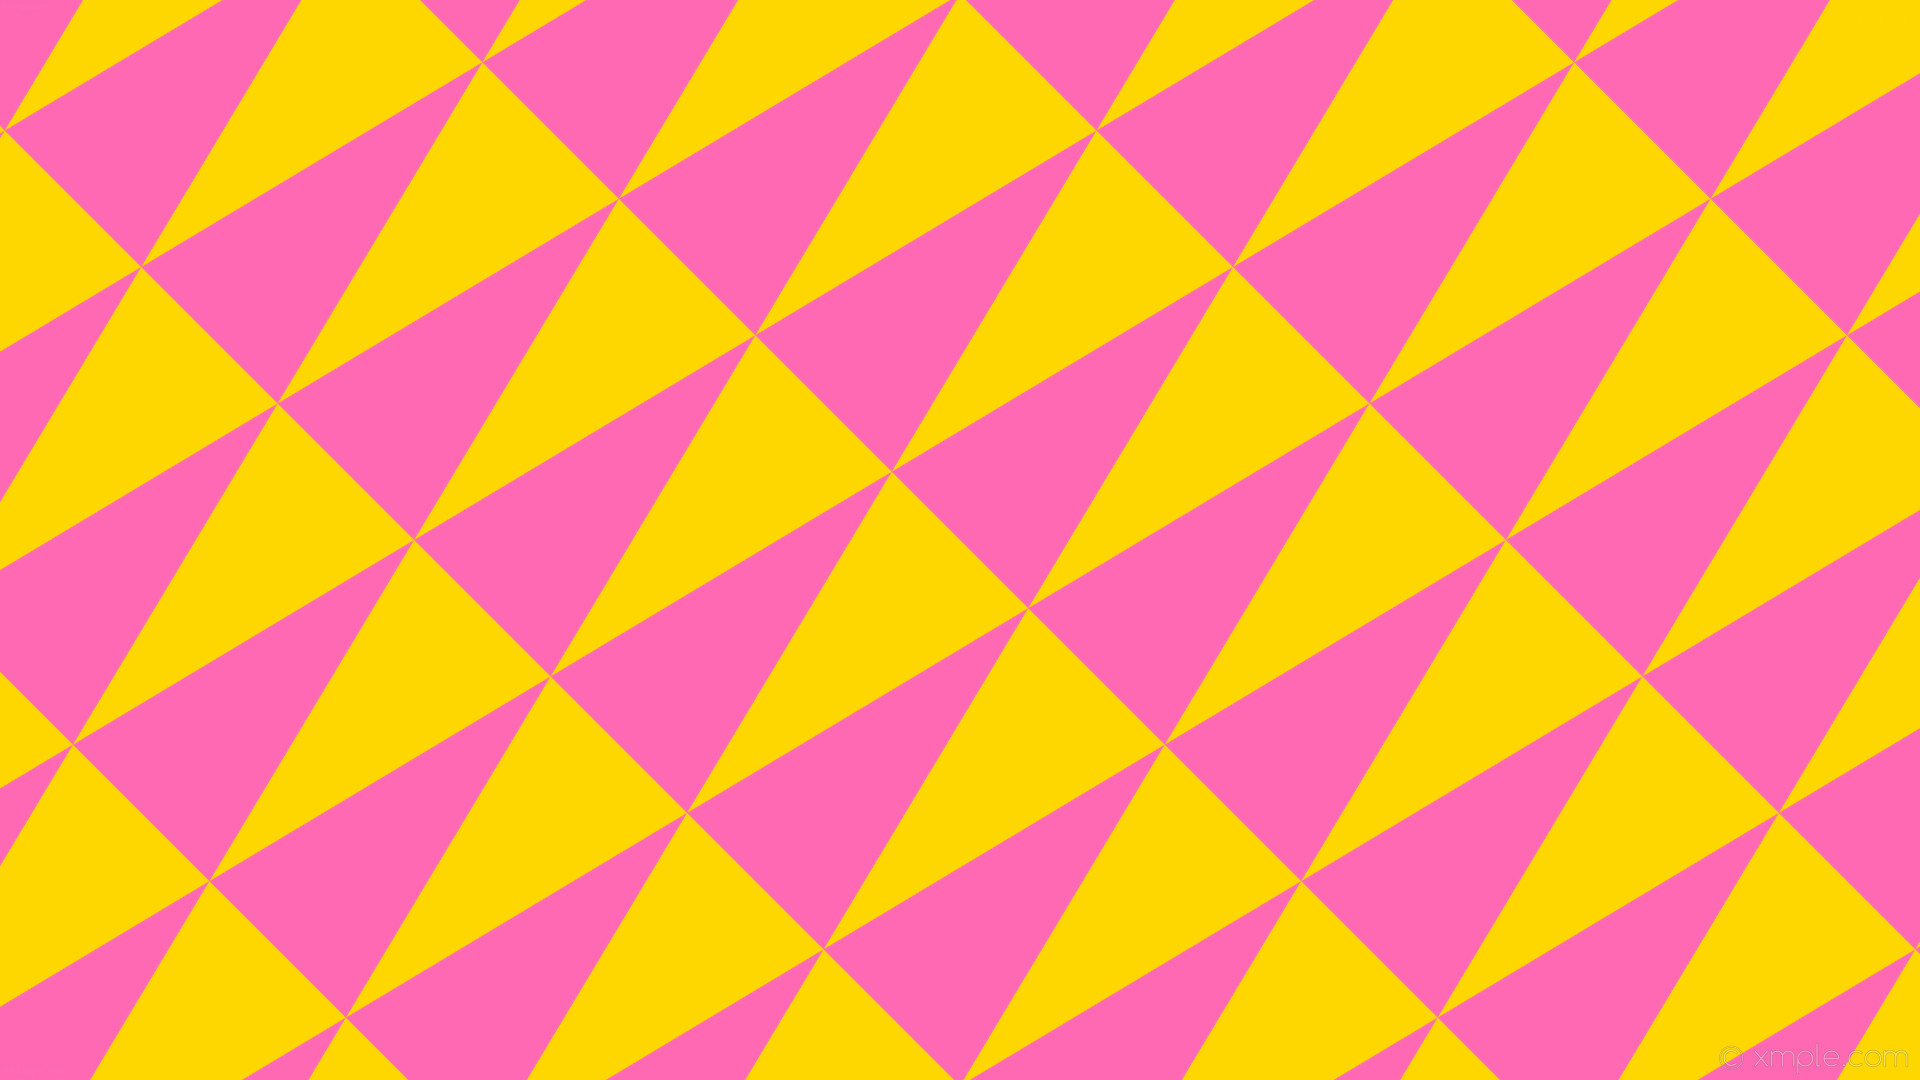 1920x1080 wallpaper pink yellow triangle gold hot pink #ffd700 #ff69b4 315° 193px  772px